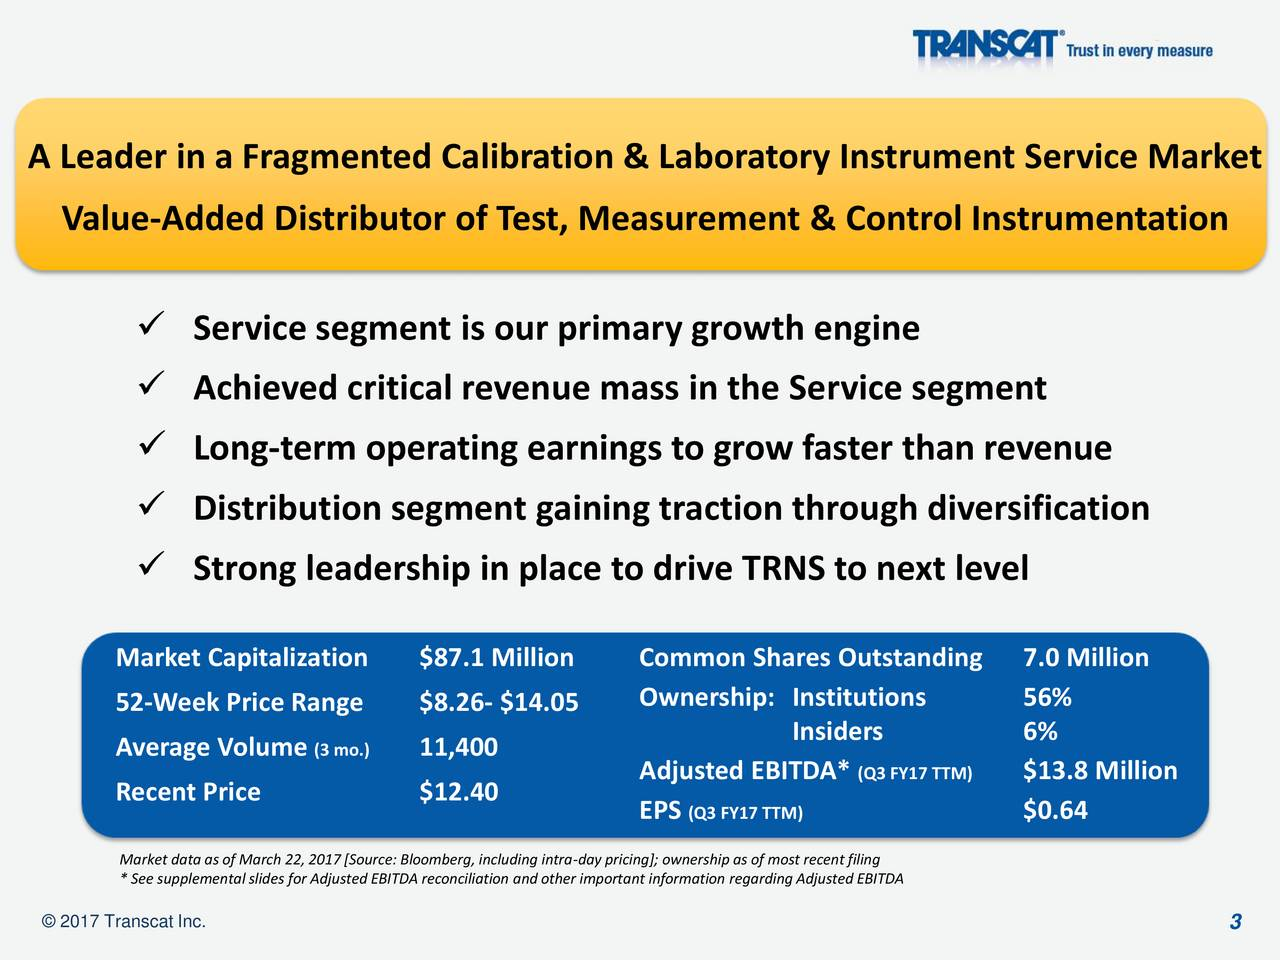 Value-Added Distributor of Test, Measurement & Control Instrumentation Service segment is our primary growth engine Achieved critical revenue mass in the Service segment Long-term operating earnings to grow faster than revenue Distribution segment gaining traction through diversification Strong leadership in place to drive TRNS to next level Market Capitalization $87.1 Million Common Shares Outstanding 7.0 Million 52-Week Price Range $8.26- $14.05 Ownership: Institutions 56% Insiders 6% Average Volume (3 mo.) 11,400 Adjusted EBITDA* (Q3 FY17 TTM) $13.8 Million Recent Price $12.40 EPS (Q3 FY17 TTM) $0.64 * See supplementalslides for Adjusted EBITDA reconciliation and other important information regarding Adjusted EBITDA 2017 Transcat Inc. 3